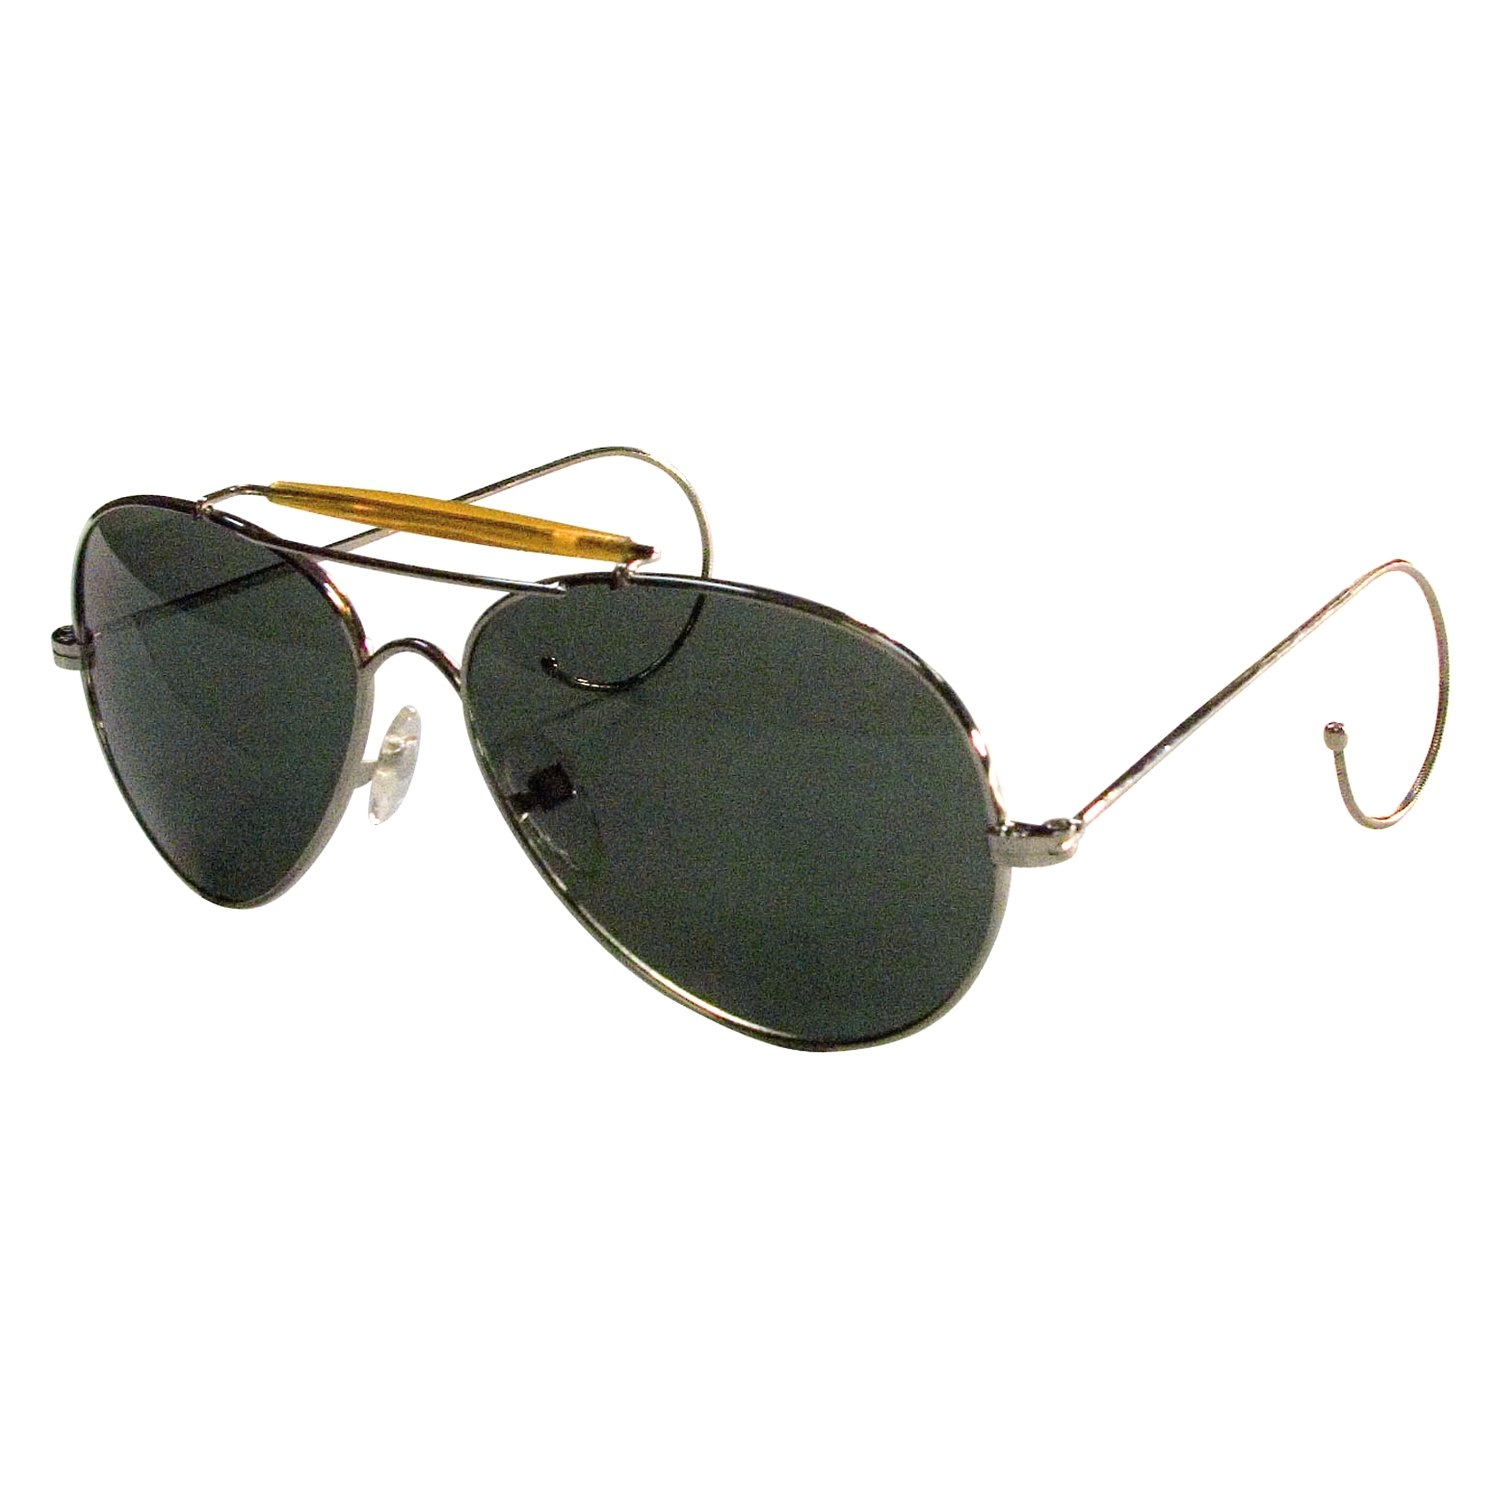 498d0d2272e Rothco® 10200-Green-Military-Printed-Case-and-Box - Aviator Air ...